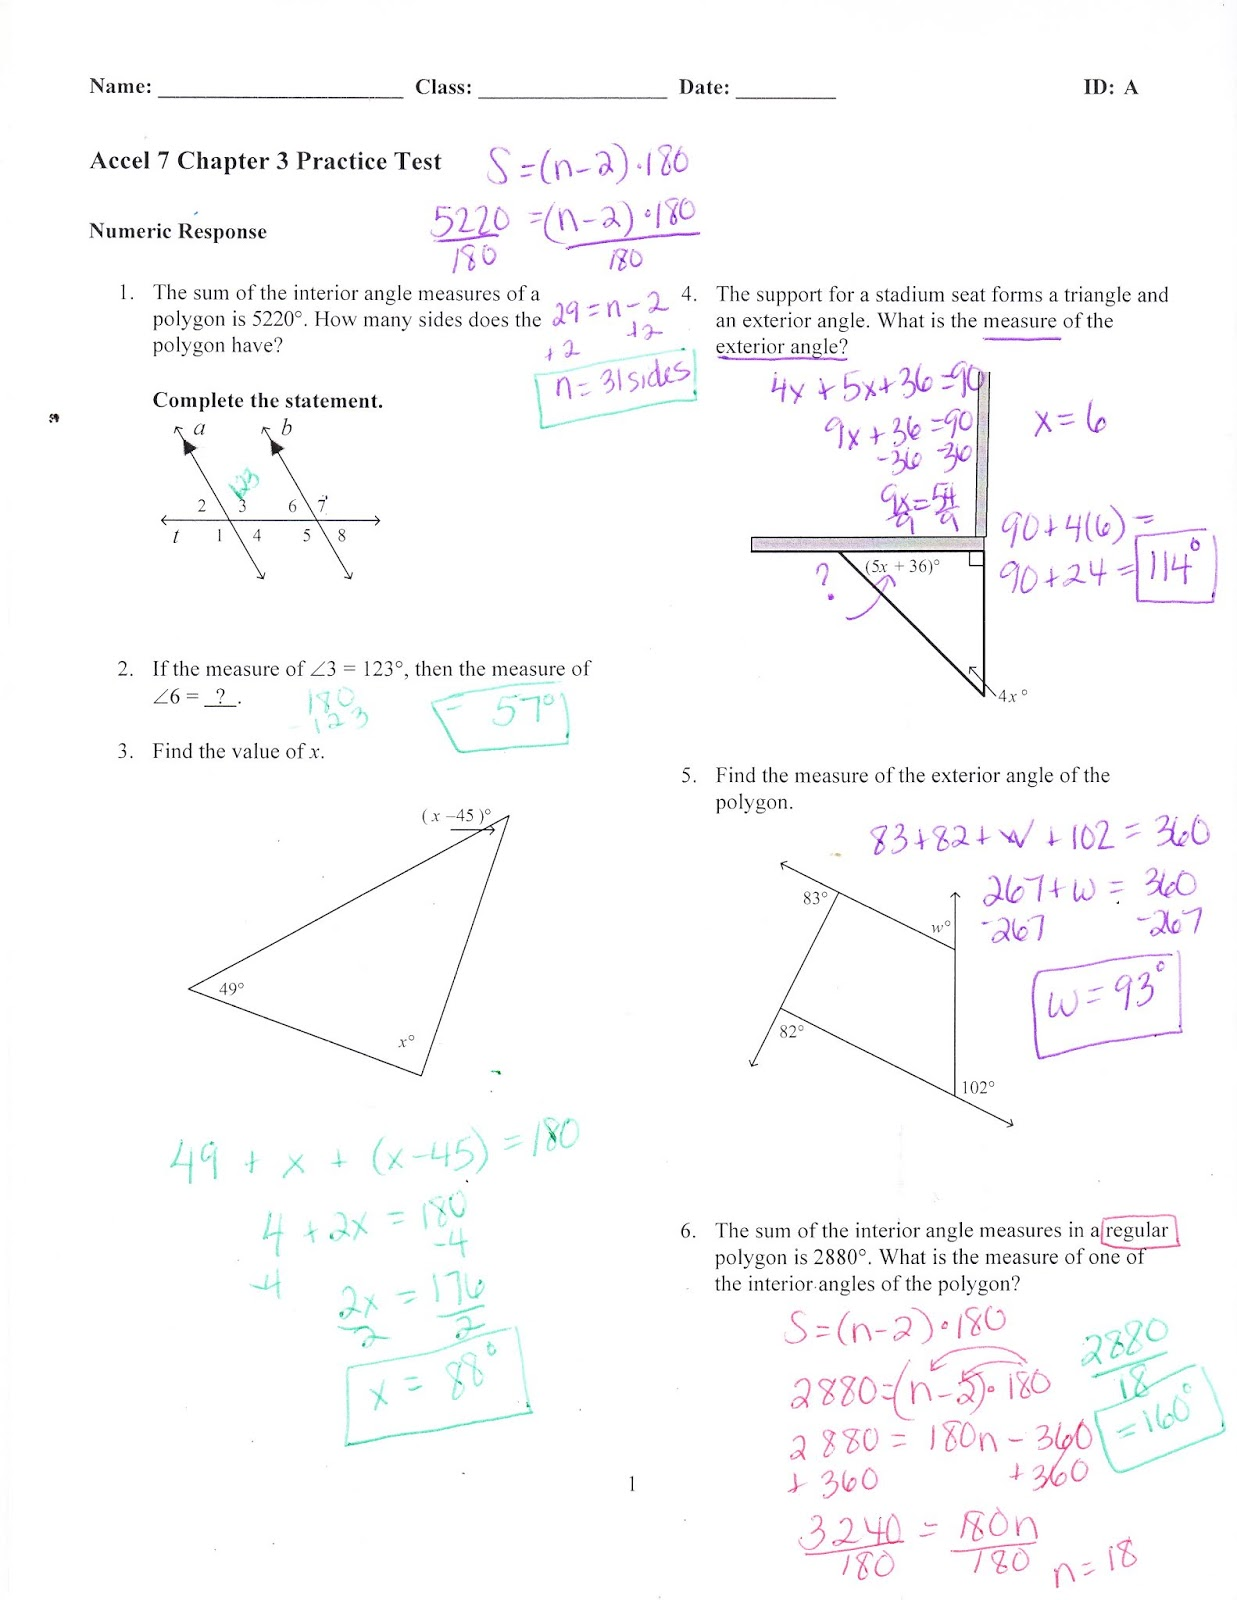 Ms. Jean's ACCEL 7 Blog: Chapter 3 Practice Test Answers